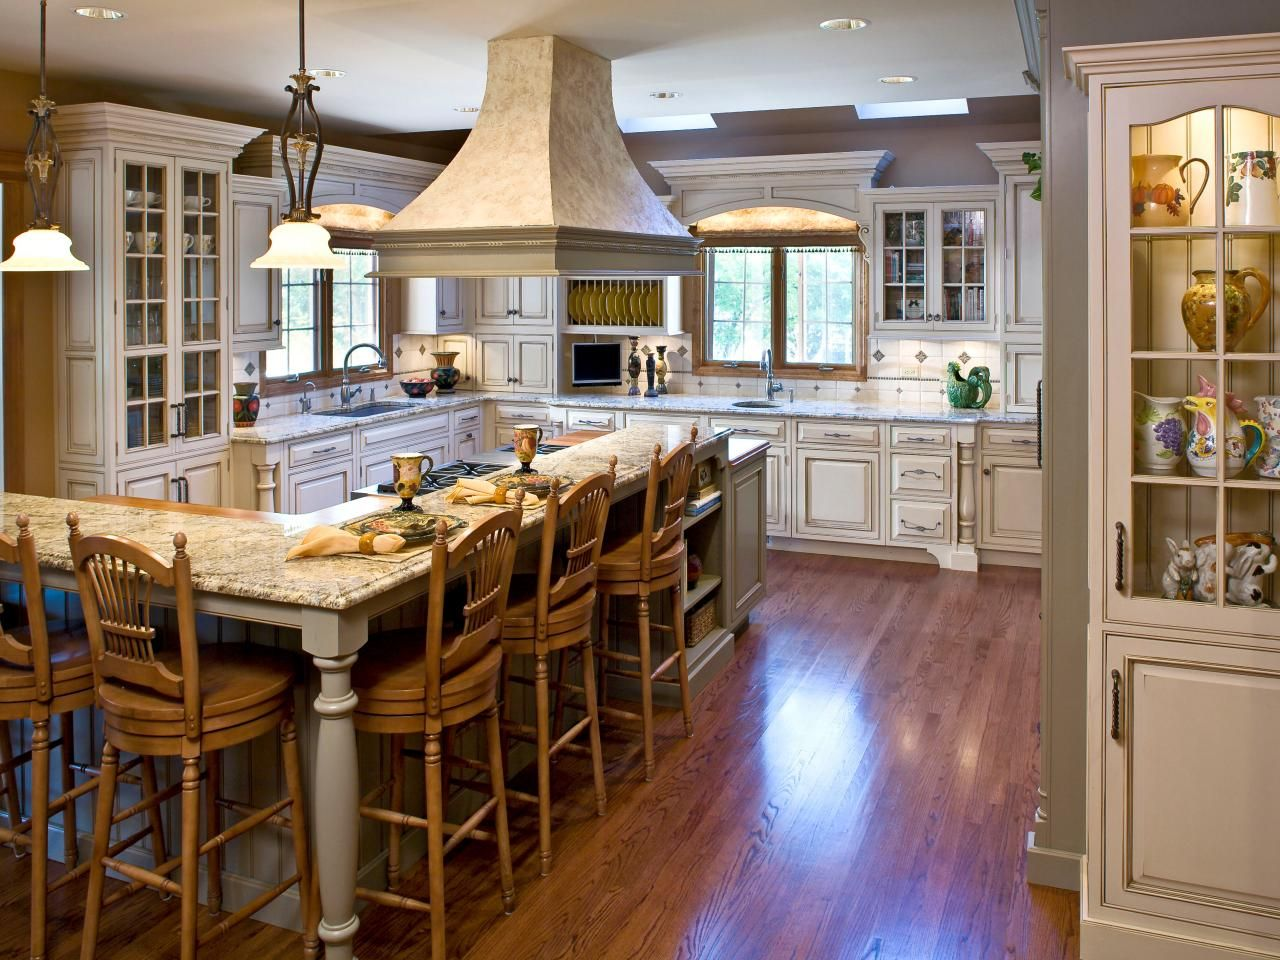 Kitchen Ideas Design Styles And Layout Options  Hgtv Kitchens Endearing L Shaped Country Kitchen Designs Design Decoration